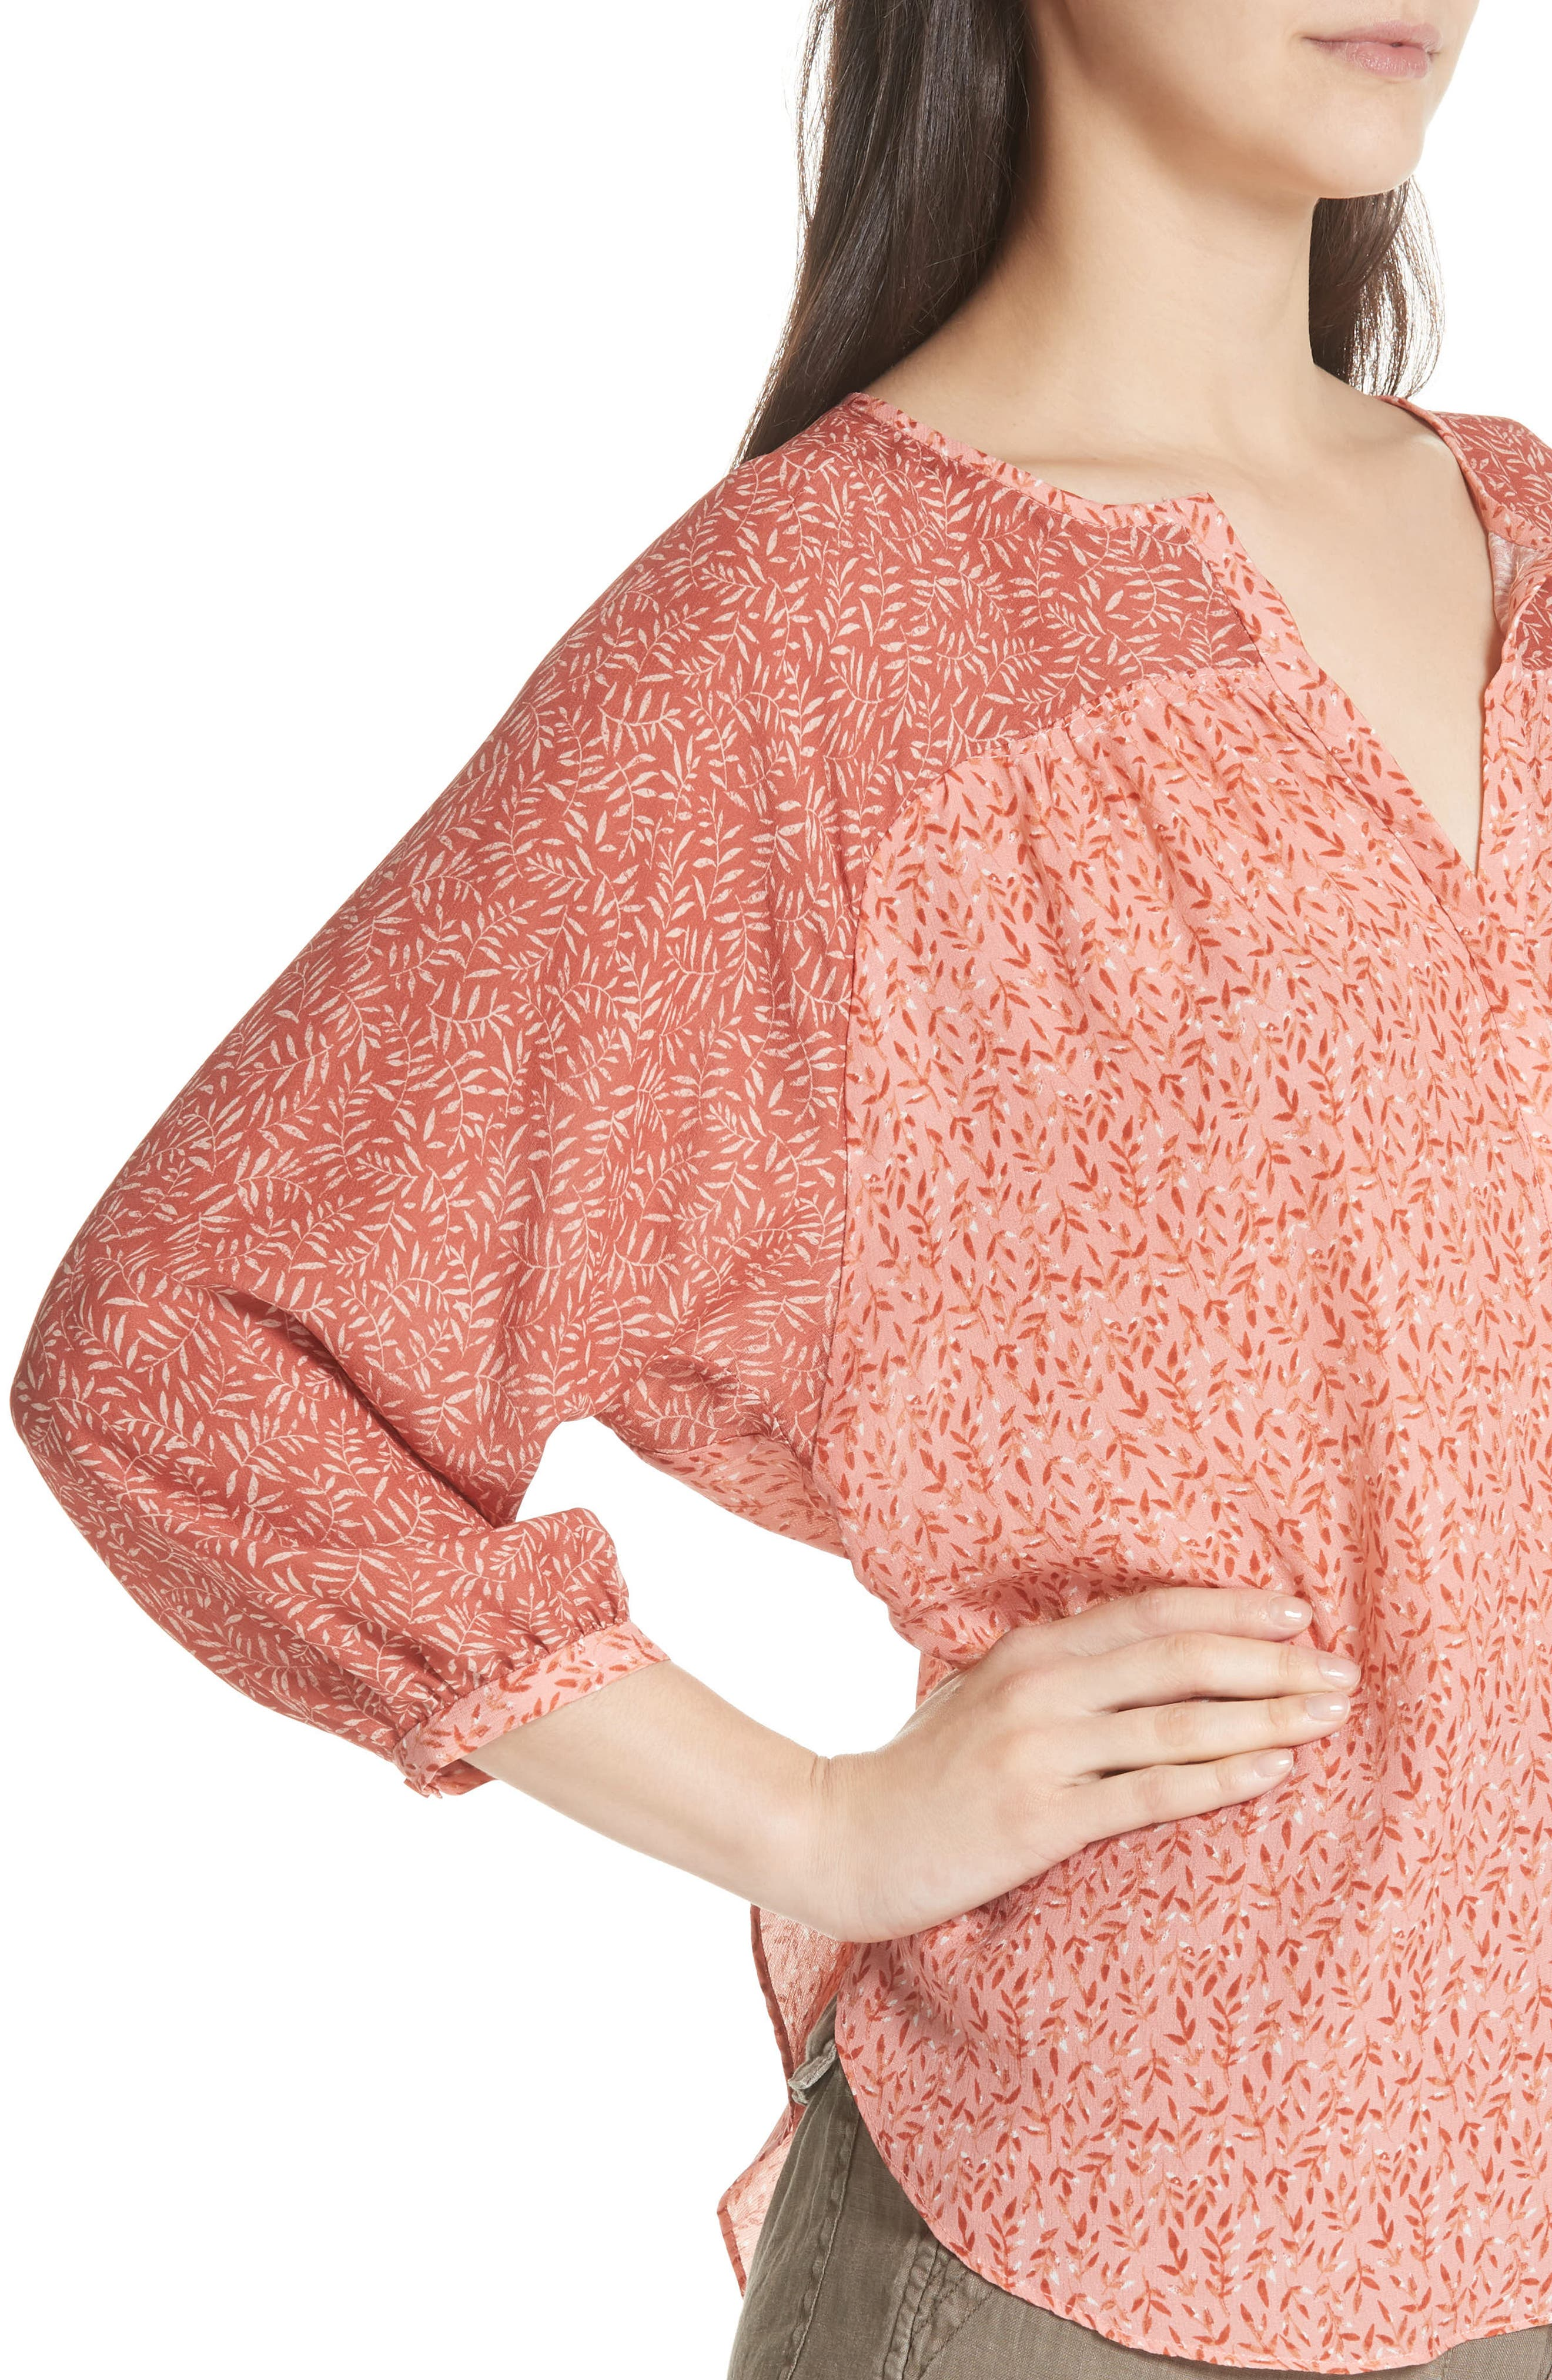 Jafeth Reverse Pattern Silk Peasant Top,                             Alternate thumbnail 4, color,                             Cinnamon